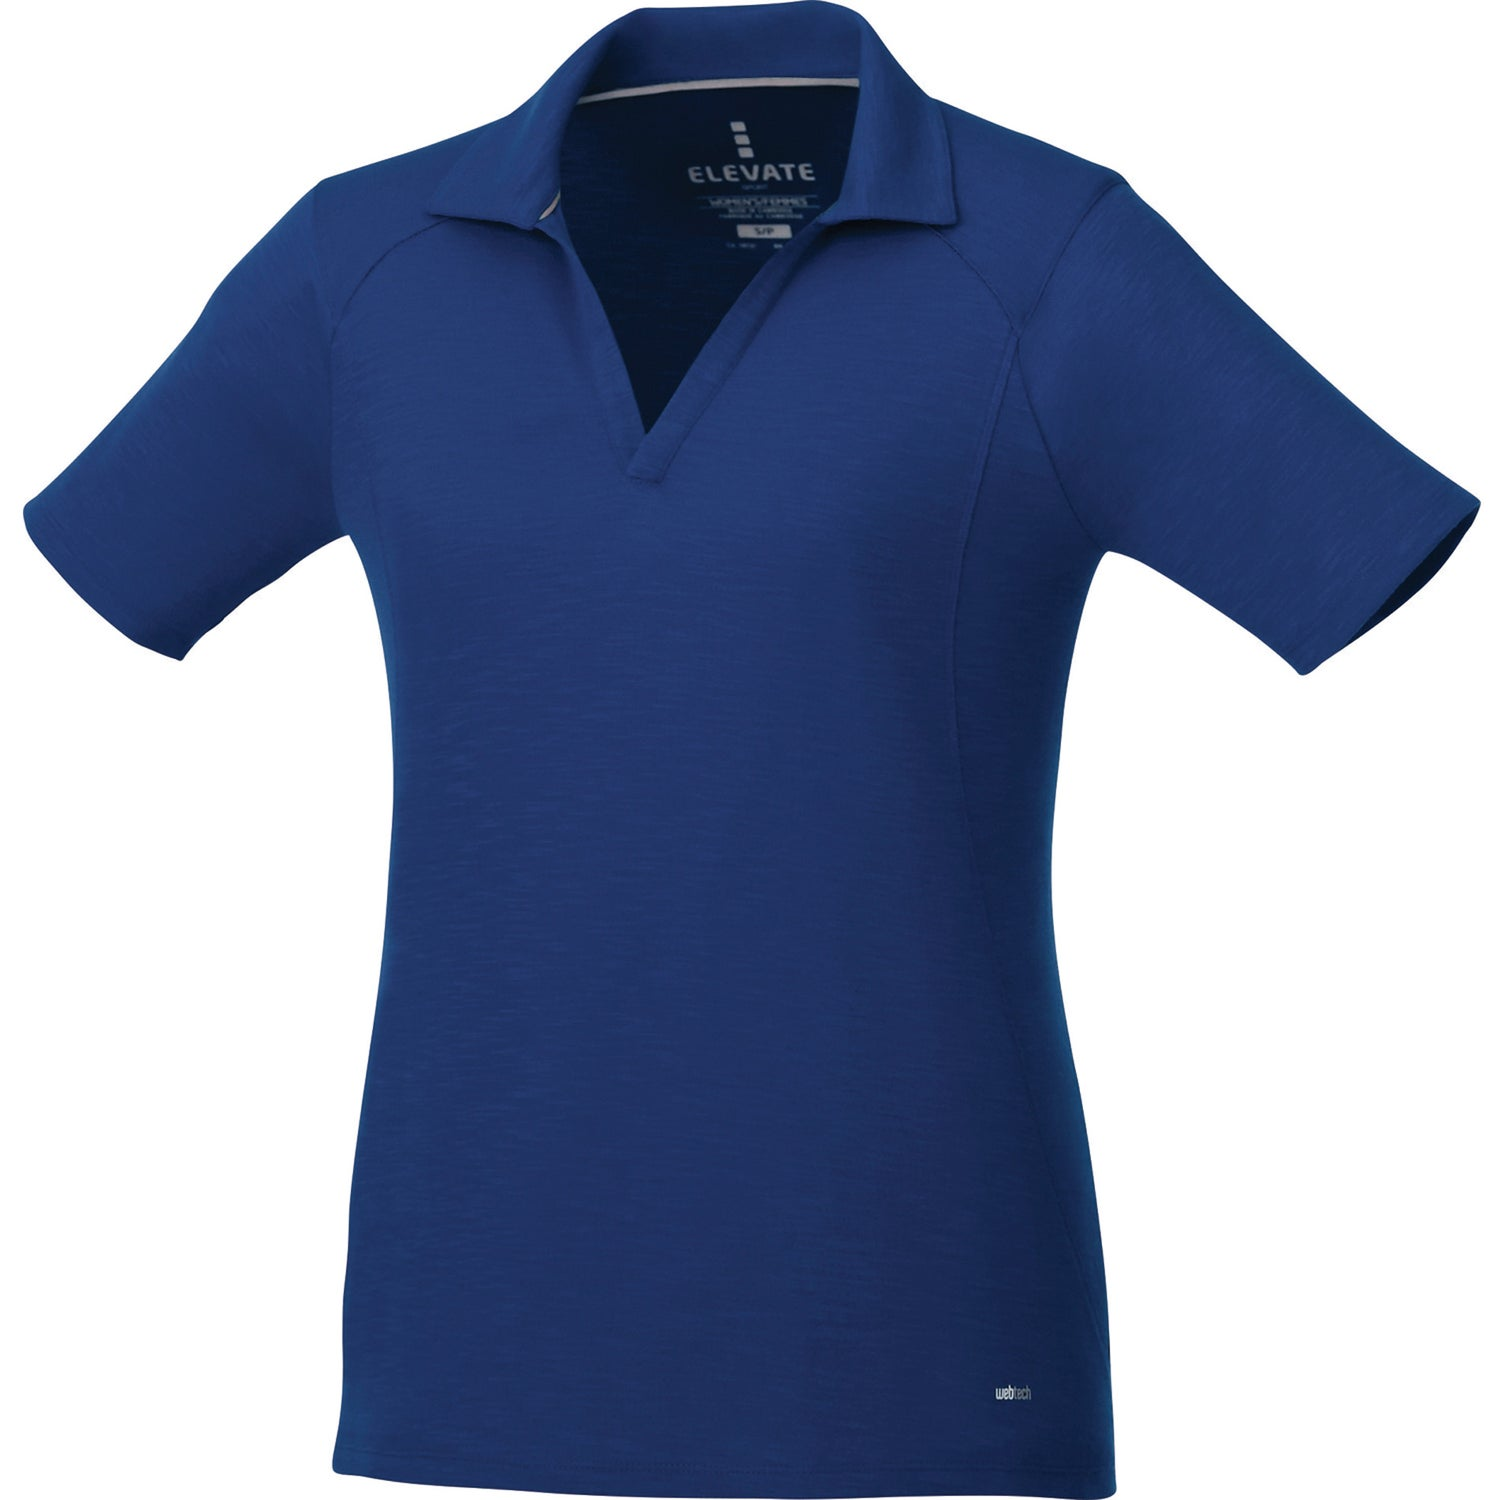 a376fcc1 CLICK HERE to Order Women's Jepson Short Sleeve Polo Shirt by TRIMARKs  Printed with Your Logo for $40.36 Ea.